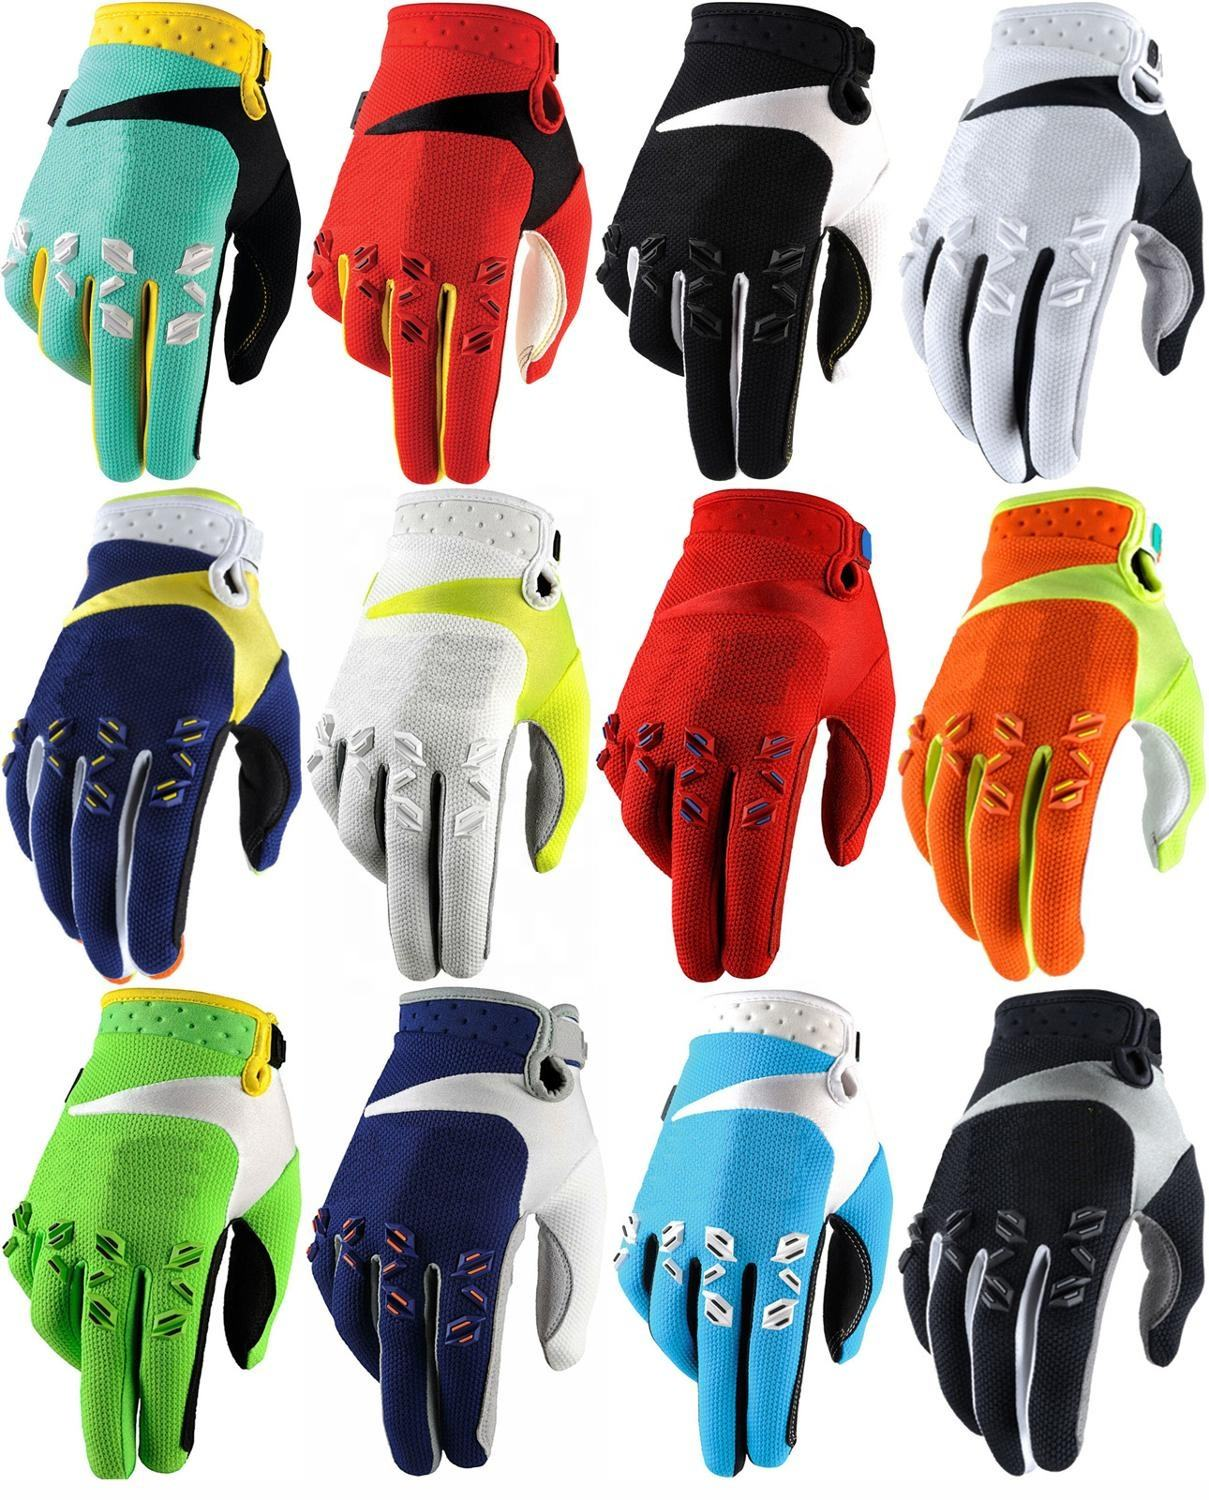 Wholesale Racing Full Finger Gloves Racing Motorcycle Motorbike Motocross Cycling Bike gloves